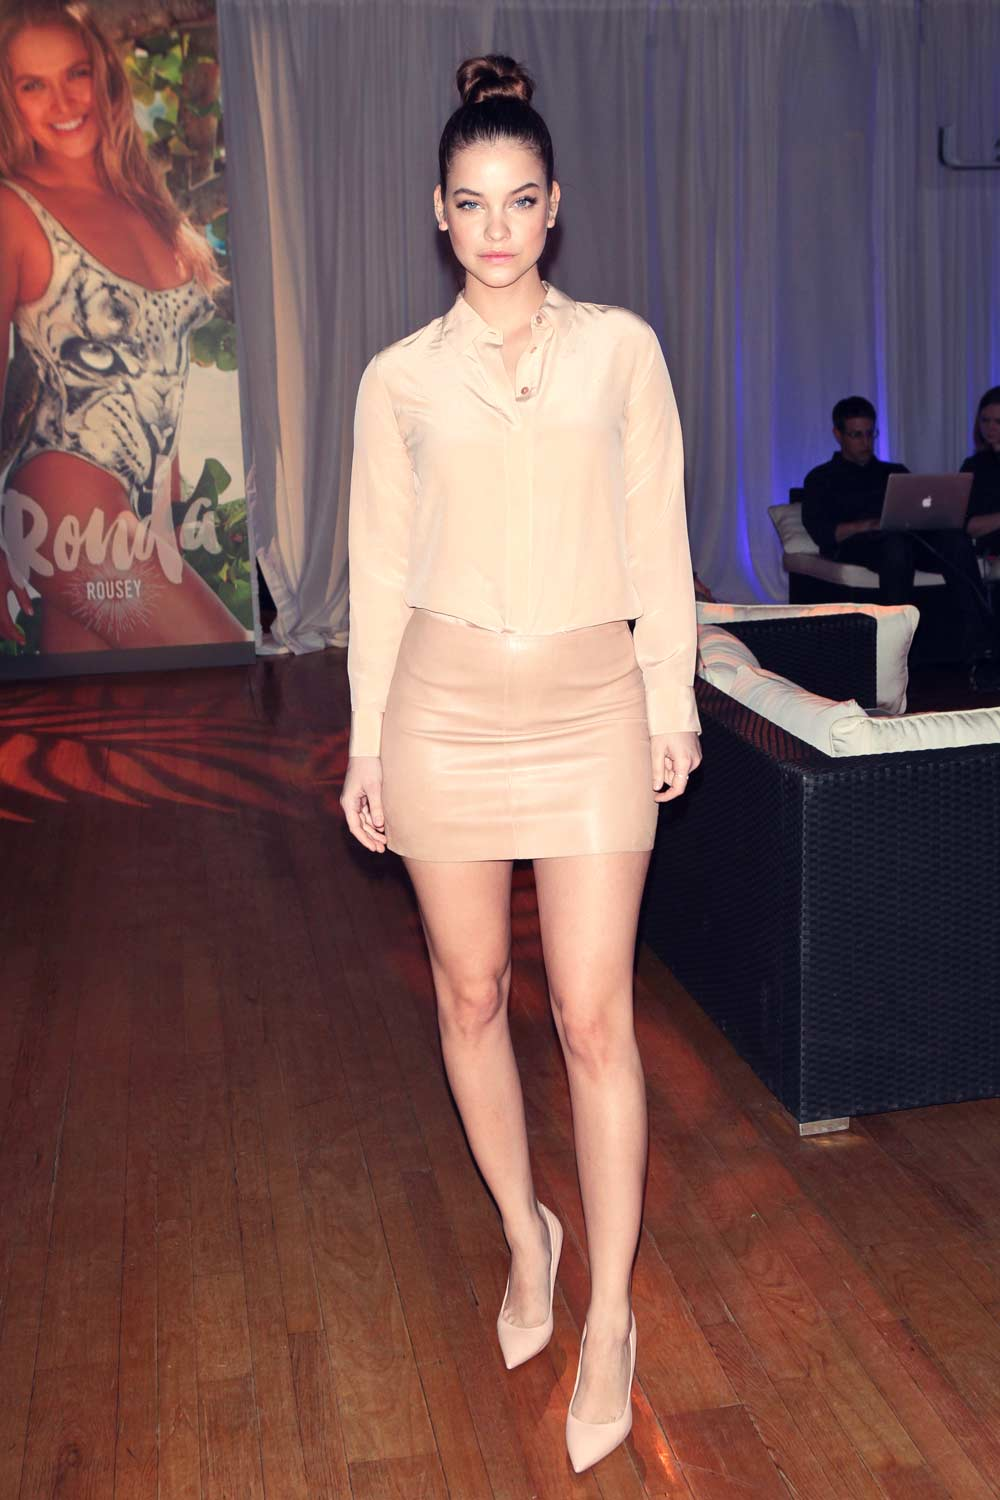 Barbara Palvin attends Sports Illustrated Swimsuit 2016 press event - Leather Celebrities